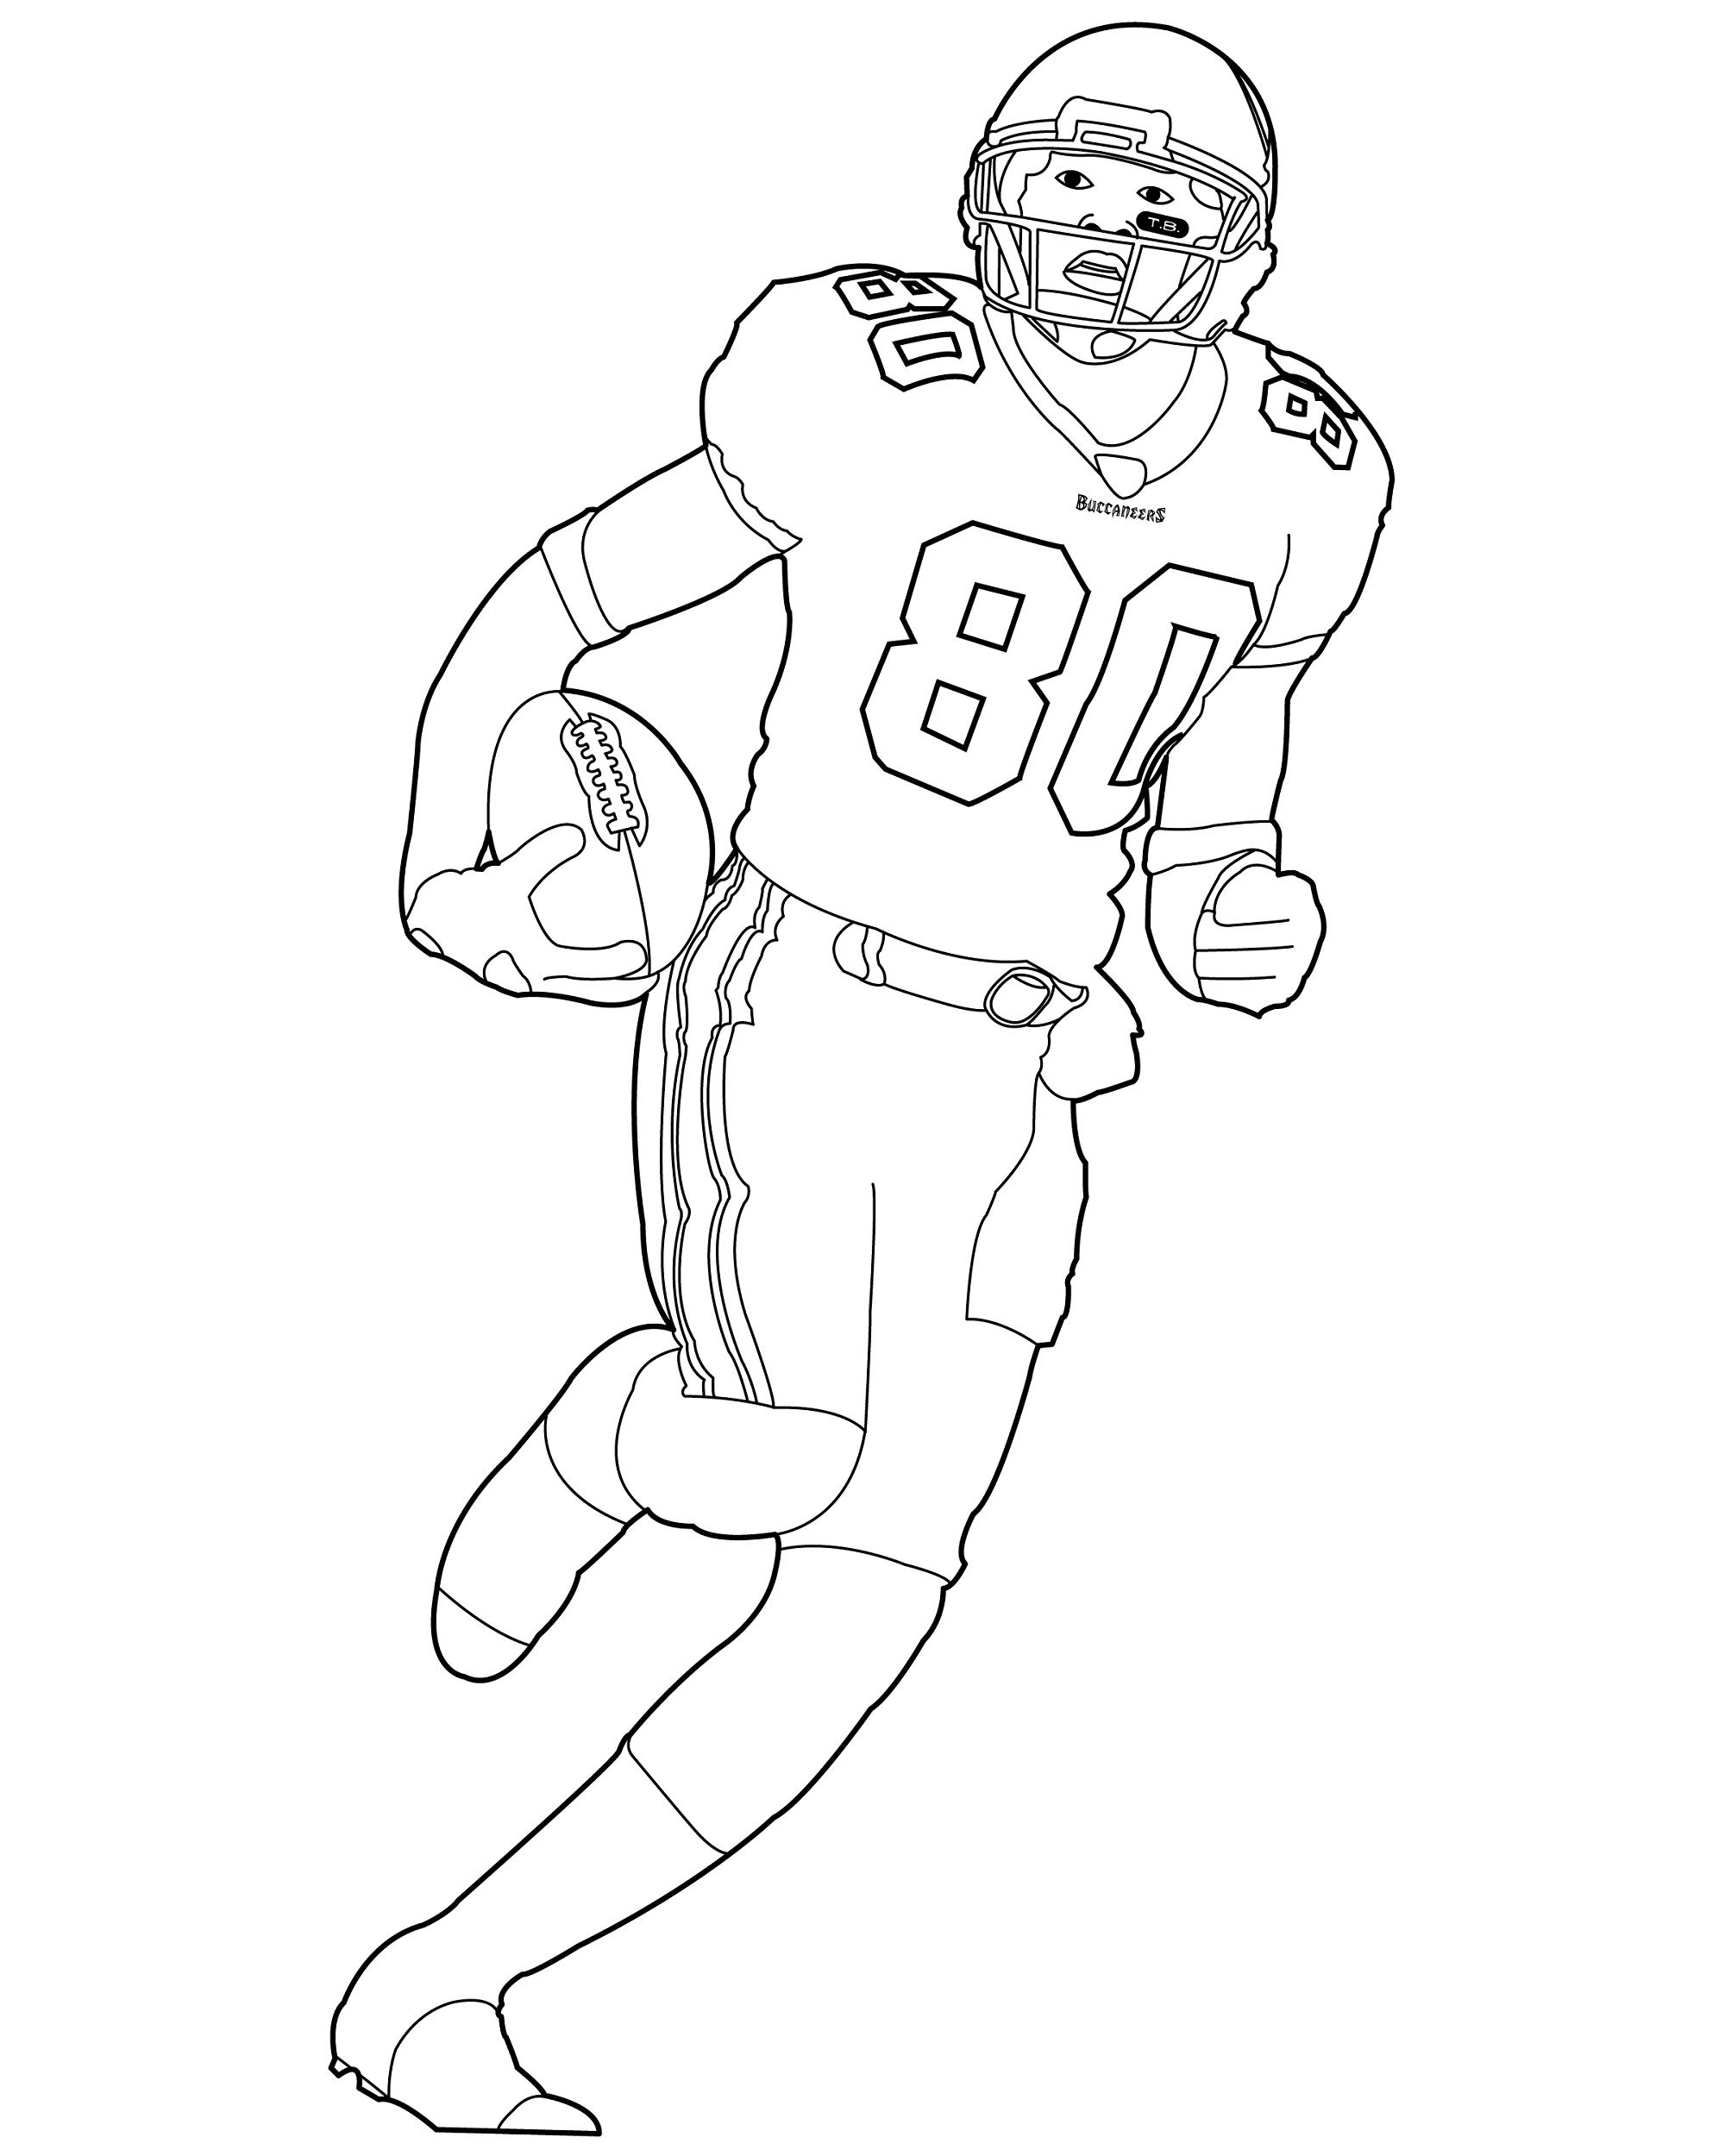 Football Color Pages 2018 Football Coloring Pages Sports Coloring Pages Coloring For Kids [ 2500 x 2000 Pixel ]